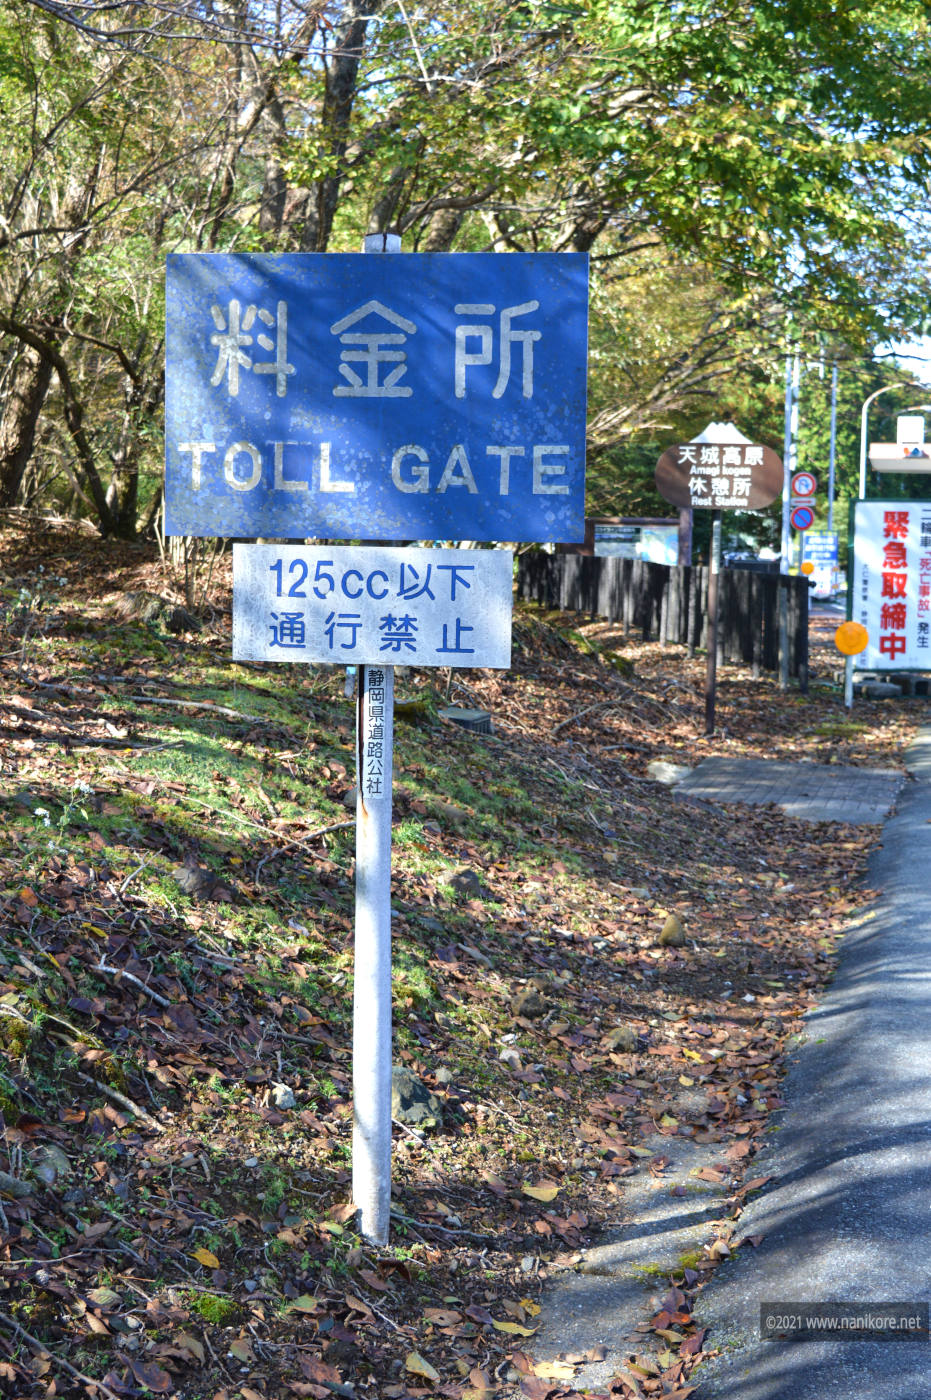 Toll gate sign at the end of the Skyline